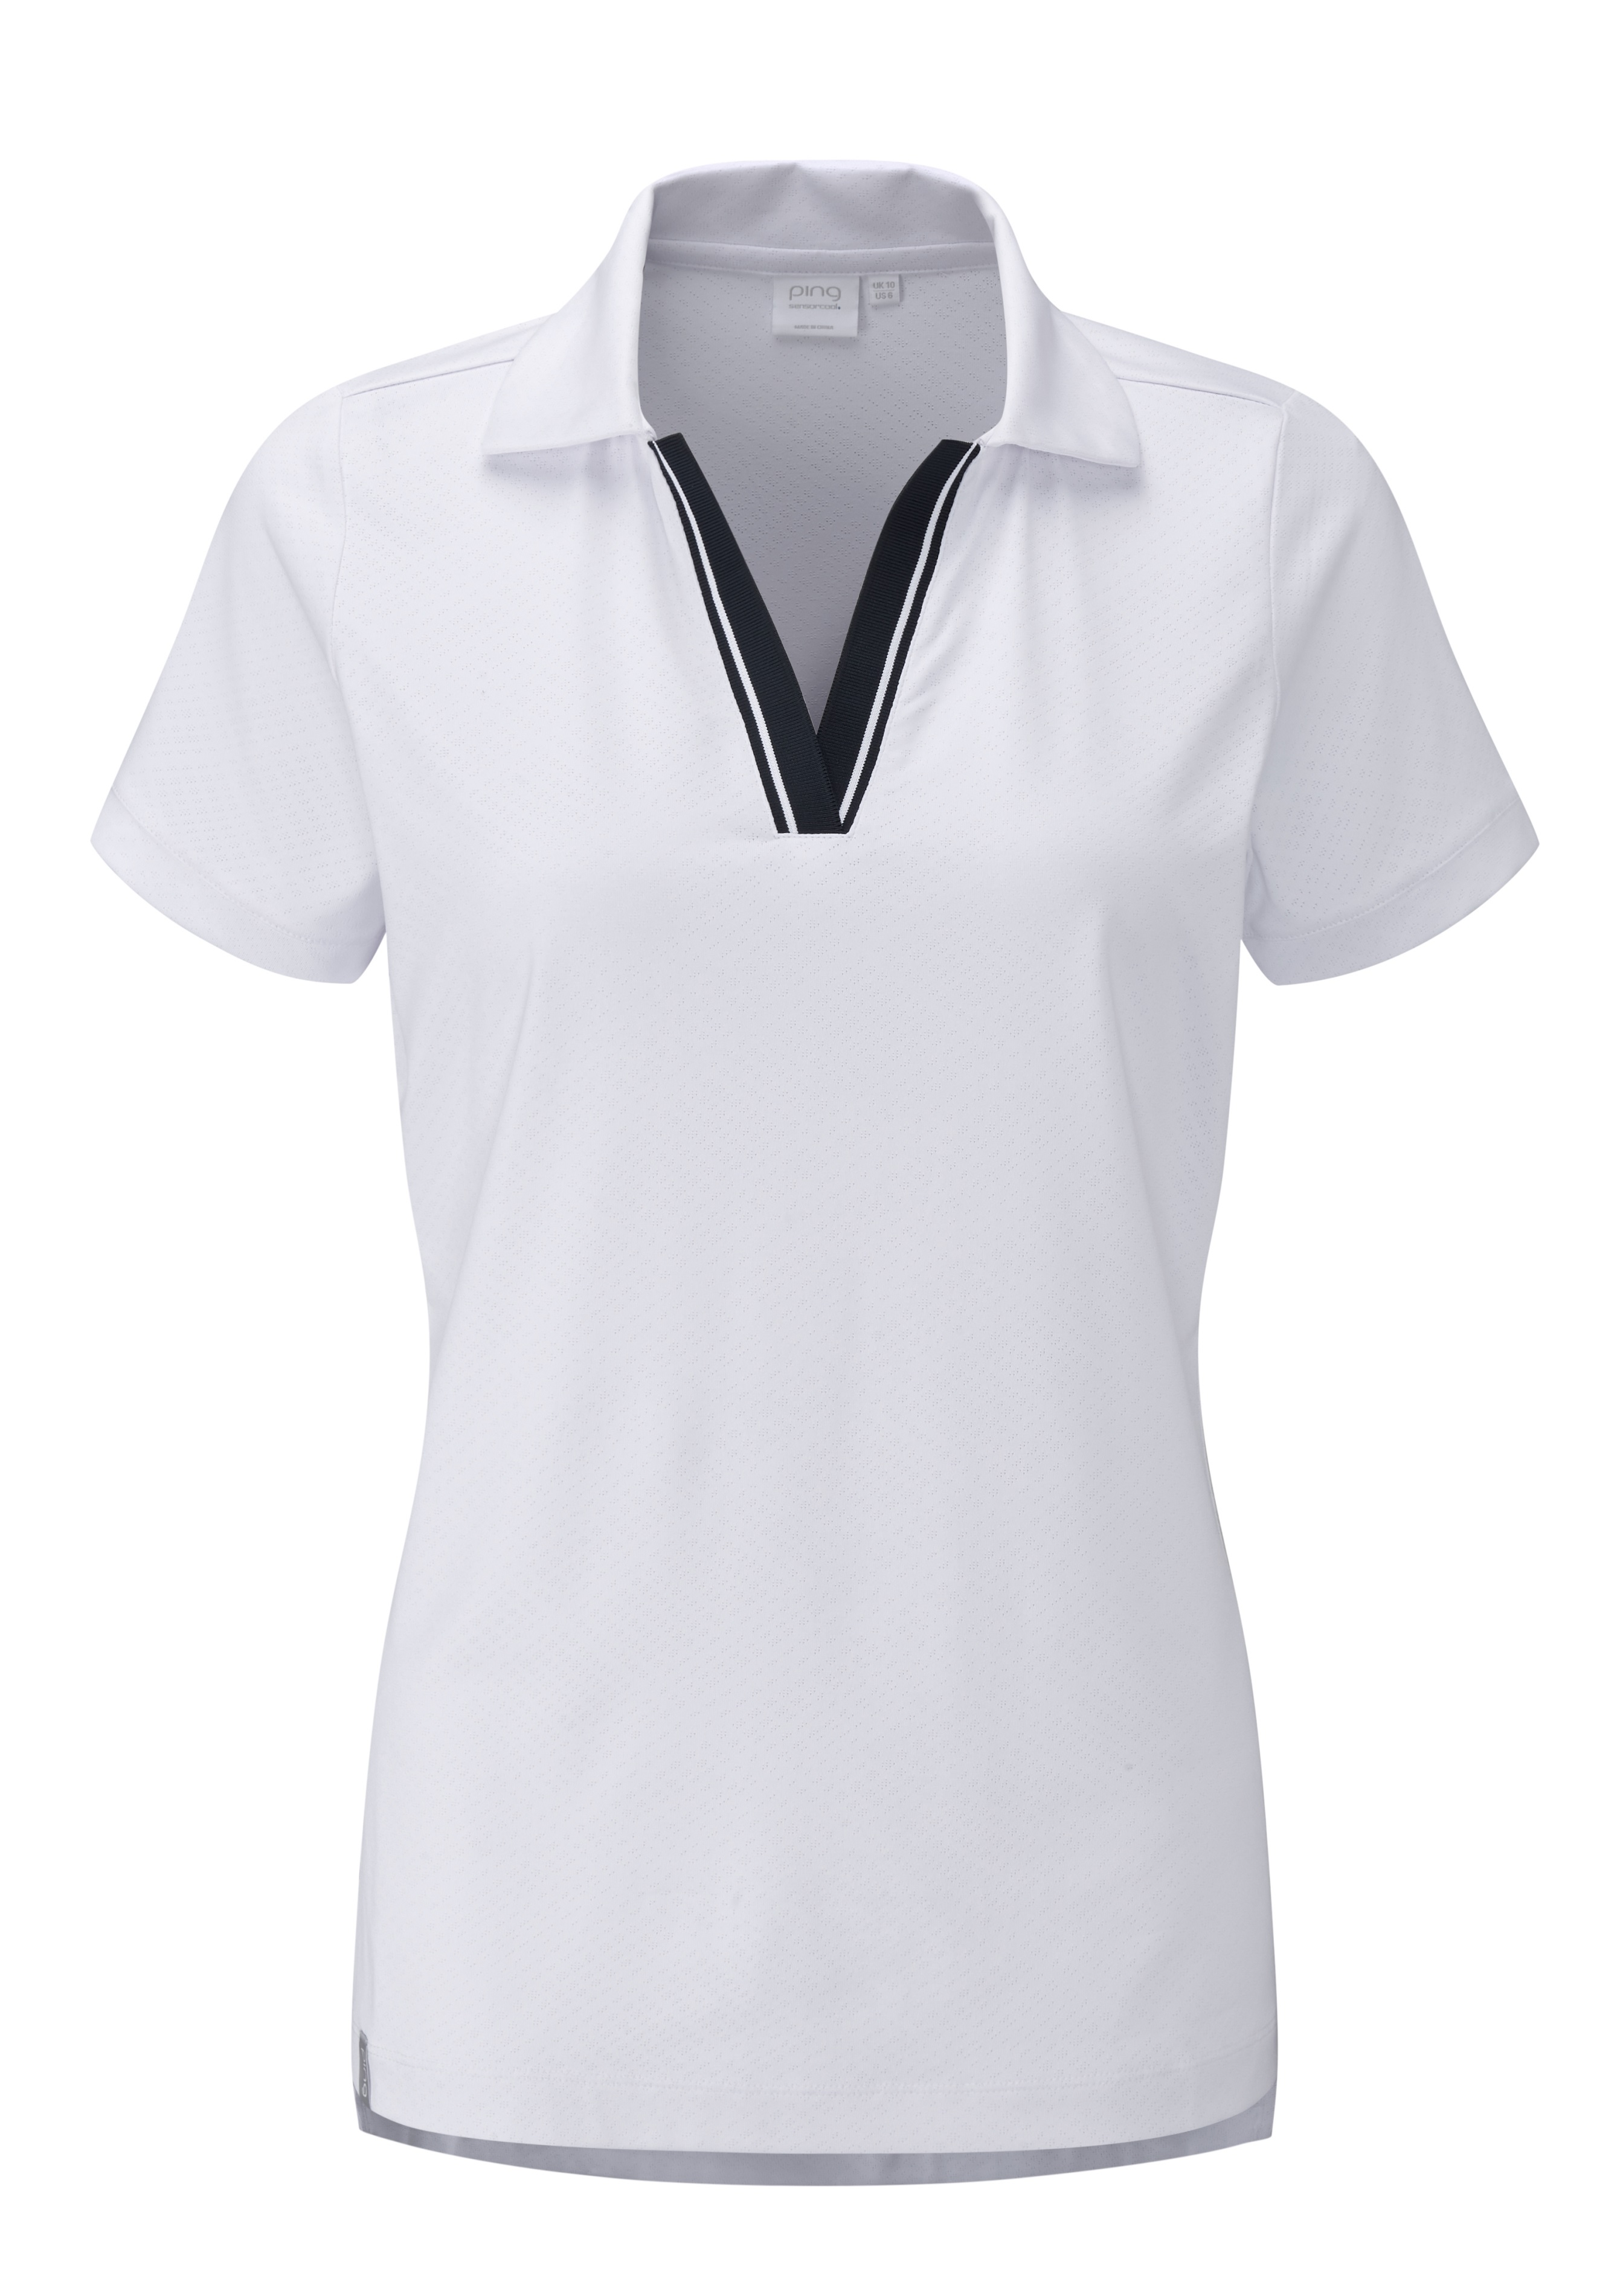 Svalkande vår/sommar-kollektioner från Ping - Hummingbird. Textured polo with tipped rib detail and a longer back hem with side splits. Also features permanent moisture moving, quick drying and stretch properties. UPF 50+.